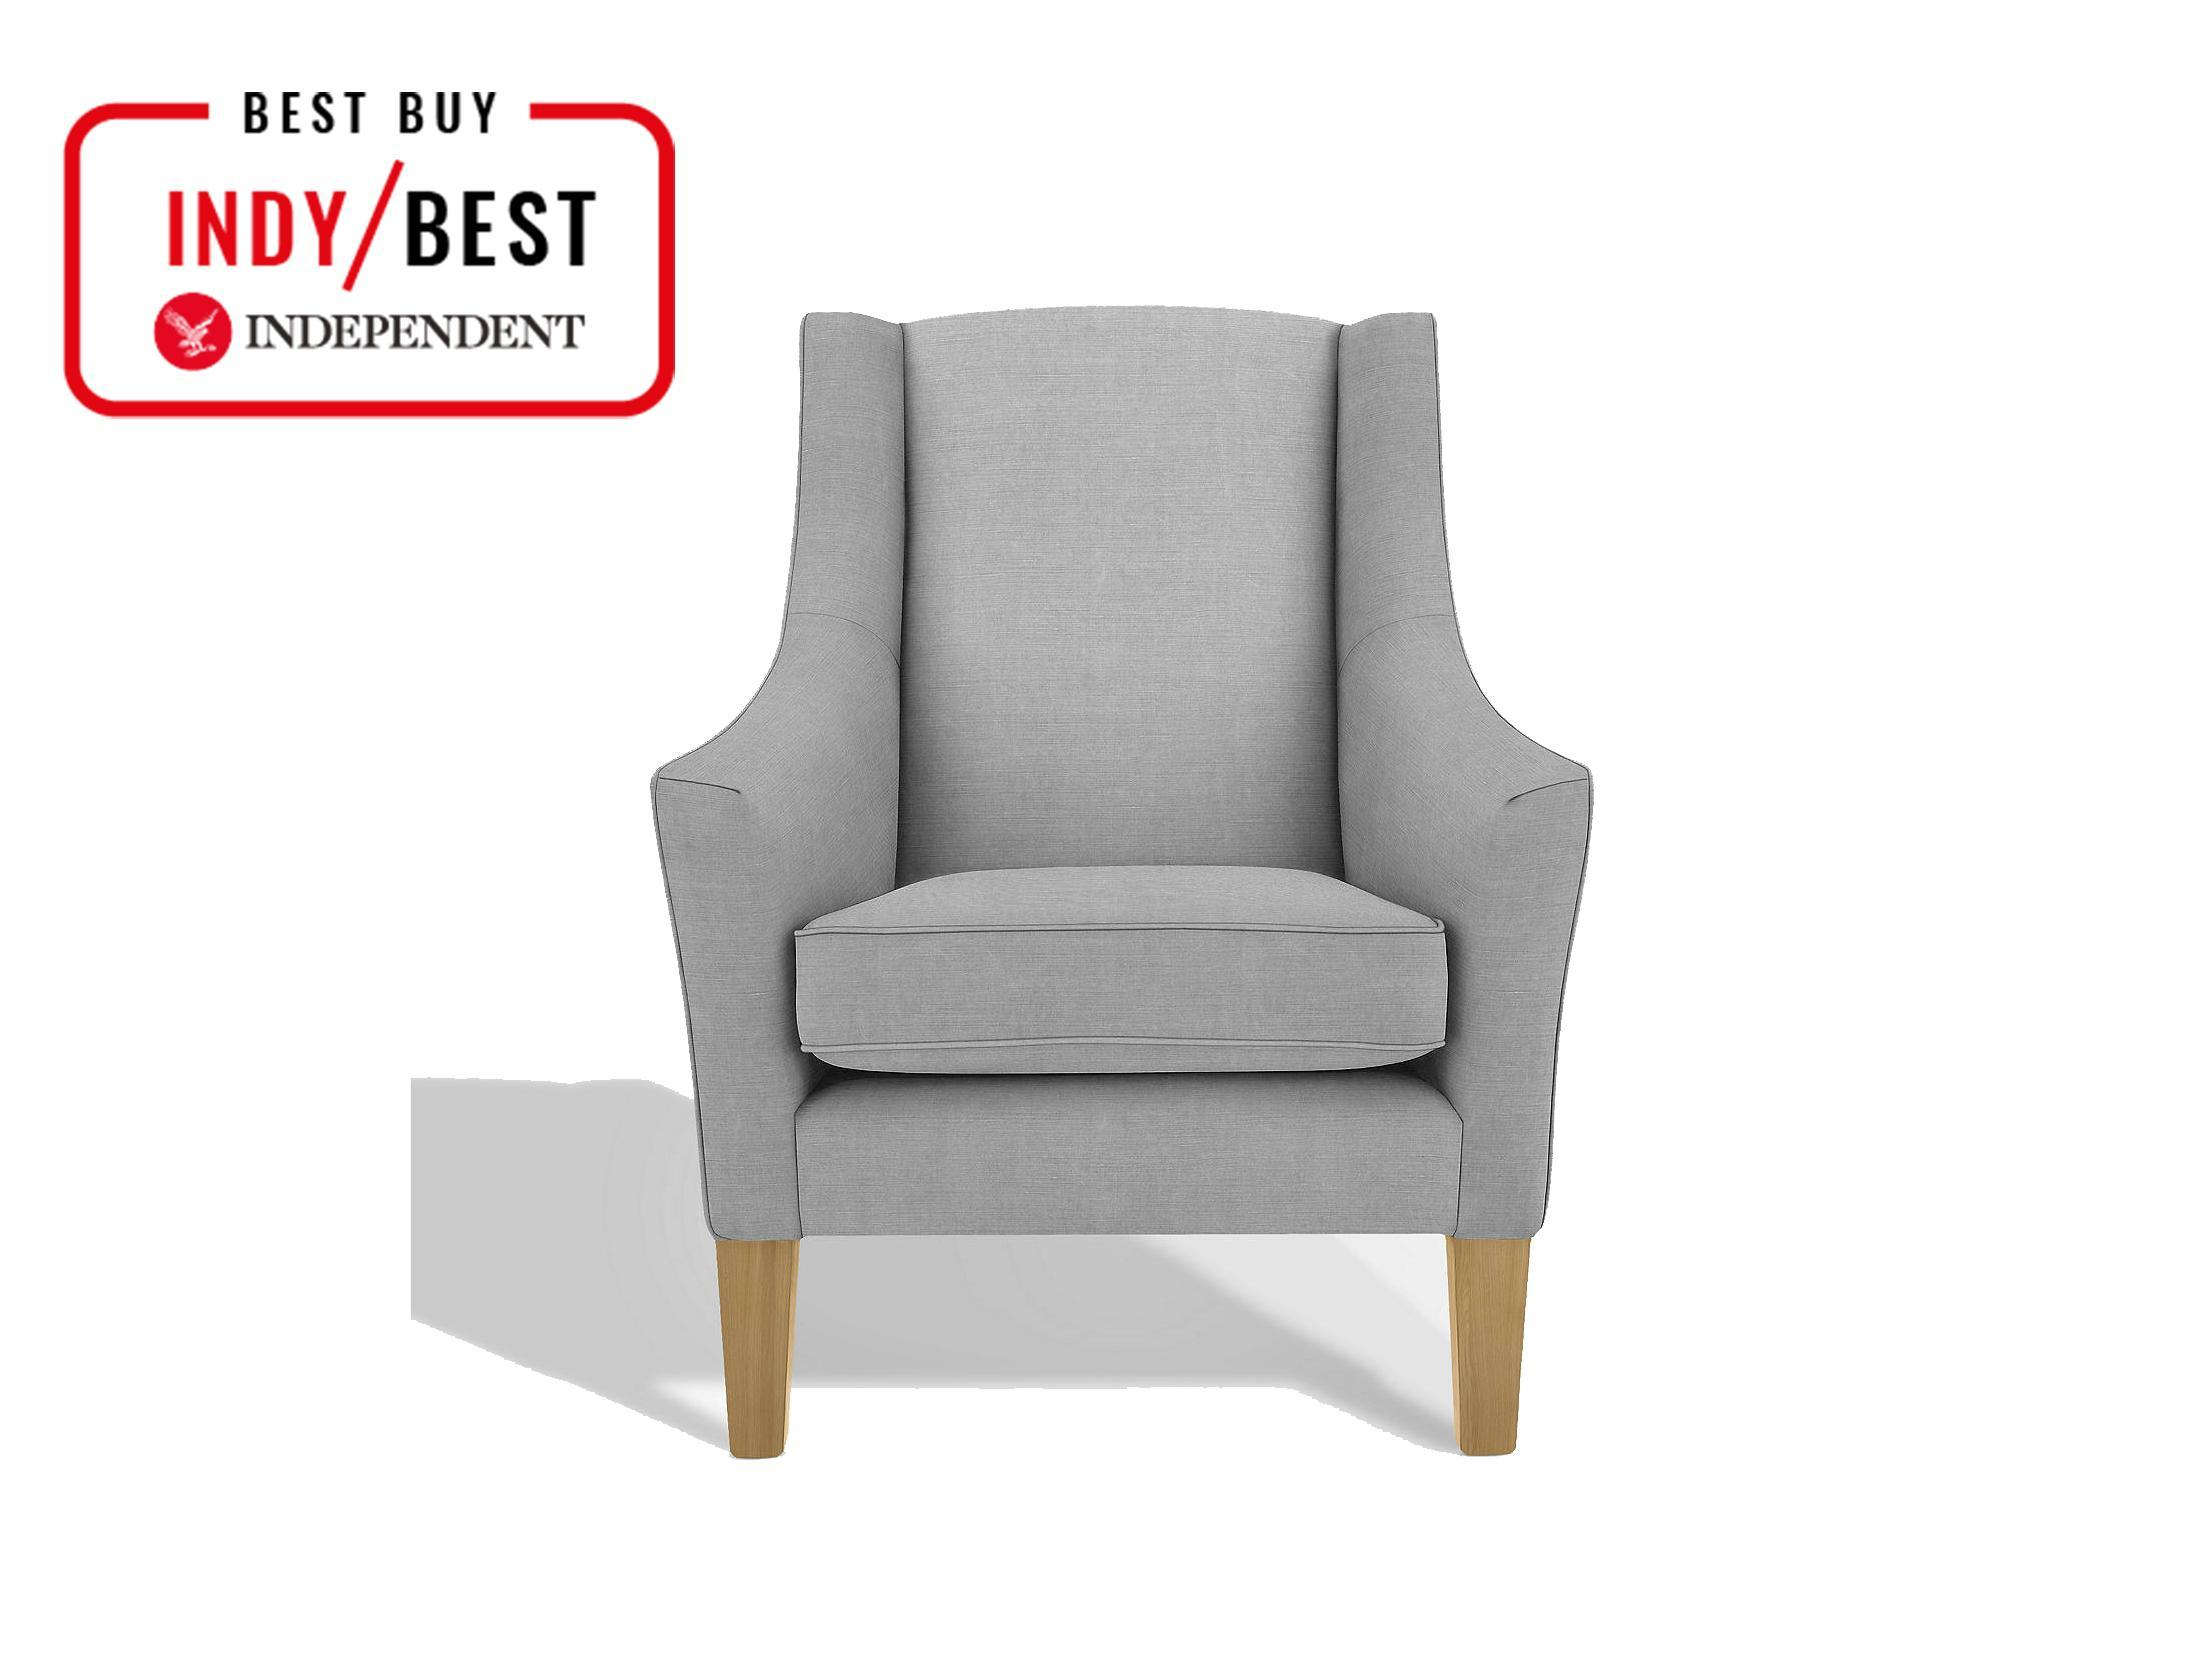 10 Best Armchairs | The Independent With Regard To Modern Blue Fabric Rocking Arm Chairs (View 11 of 20)